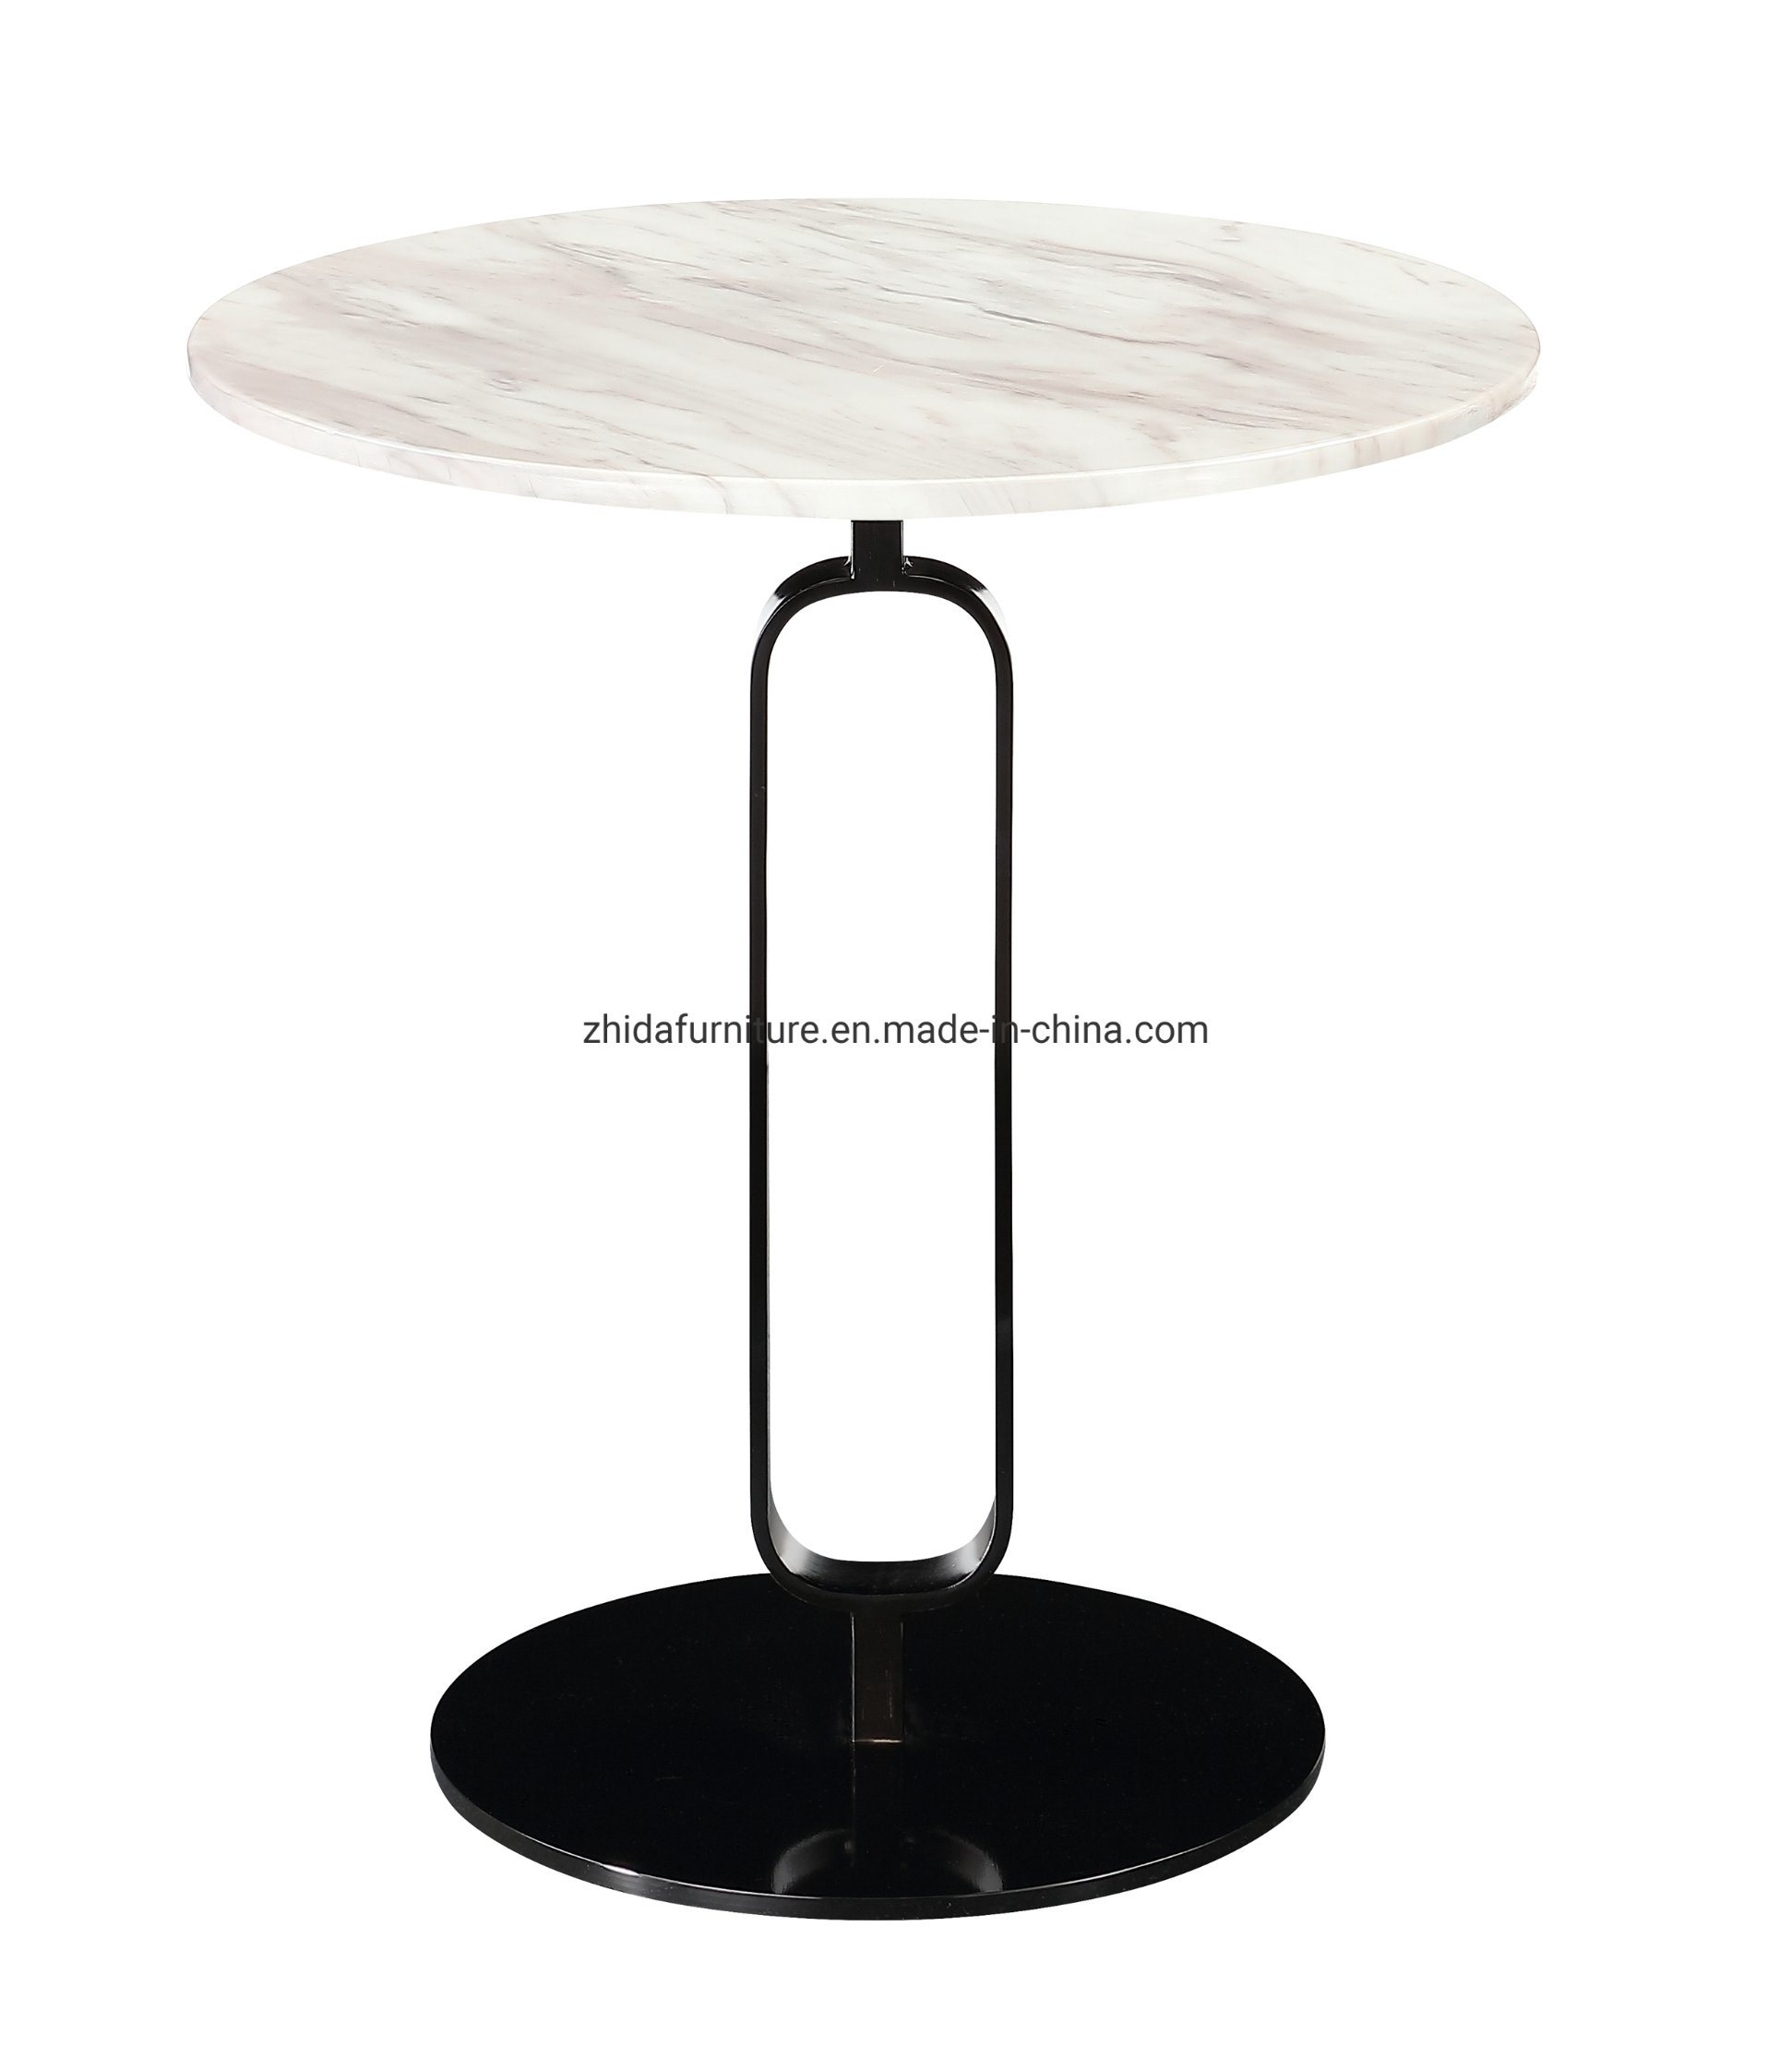 - China White Marble Top Black Base Hotel Bedroom Reception Coffee